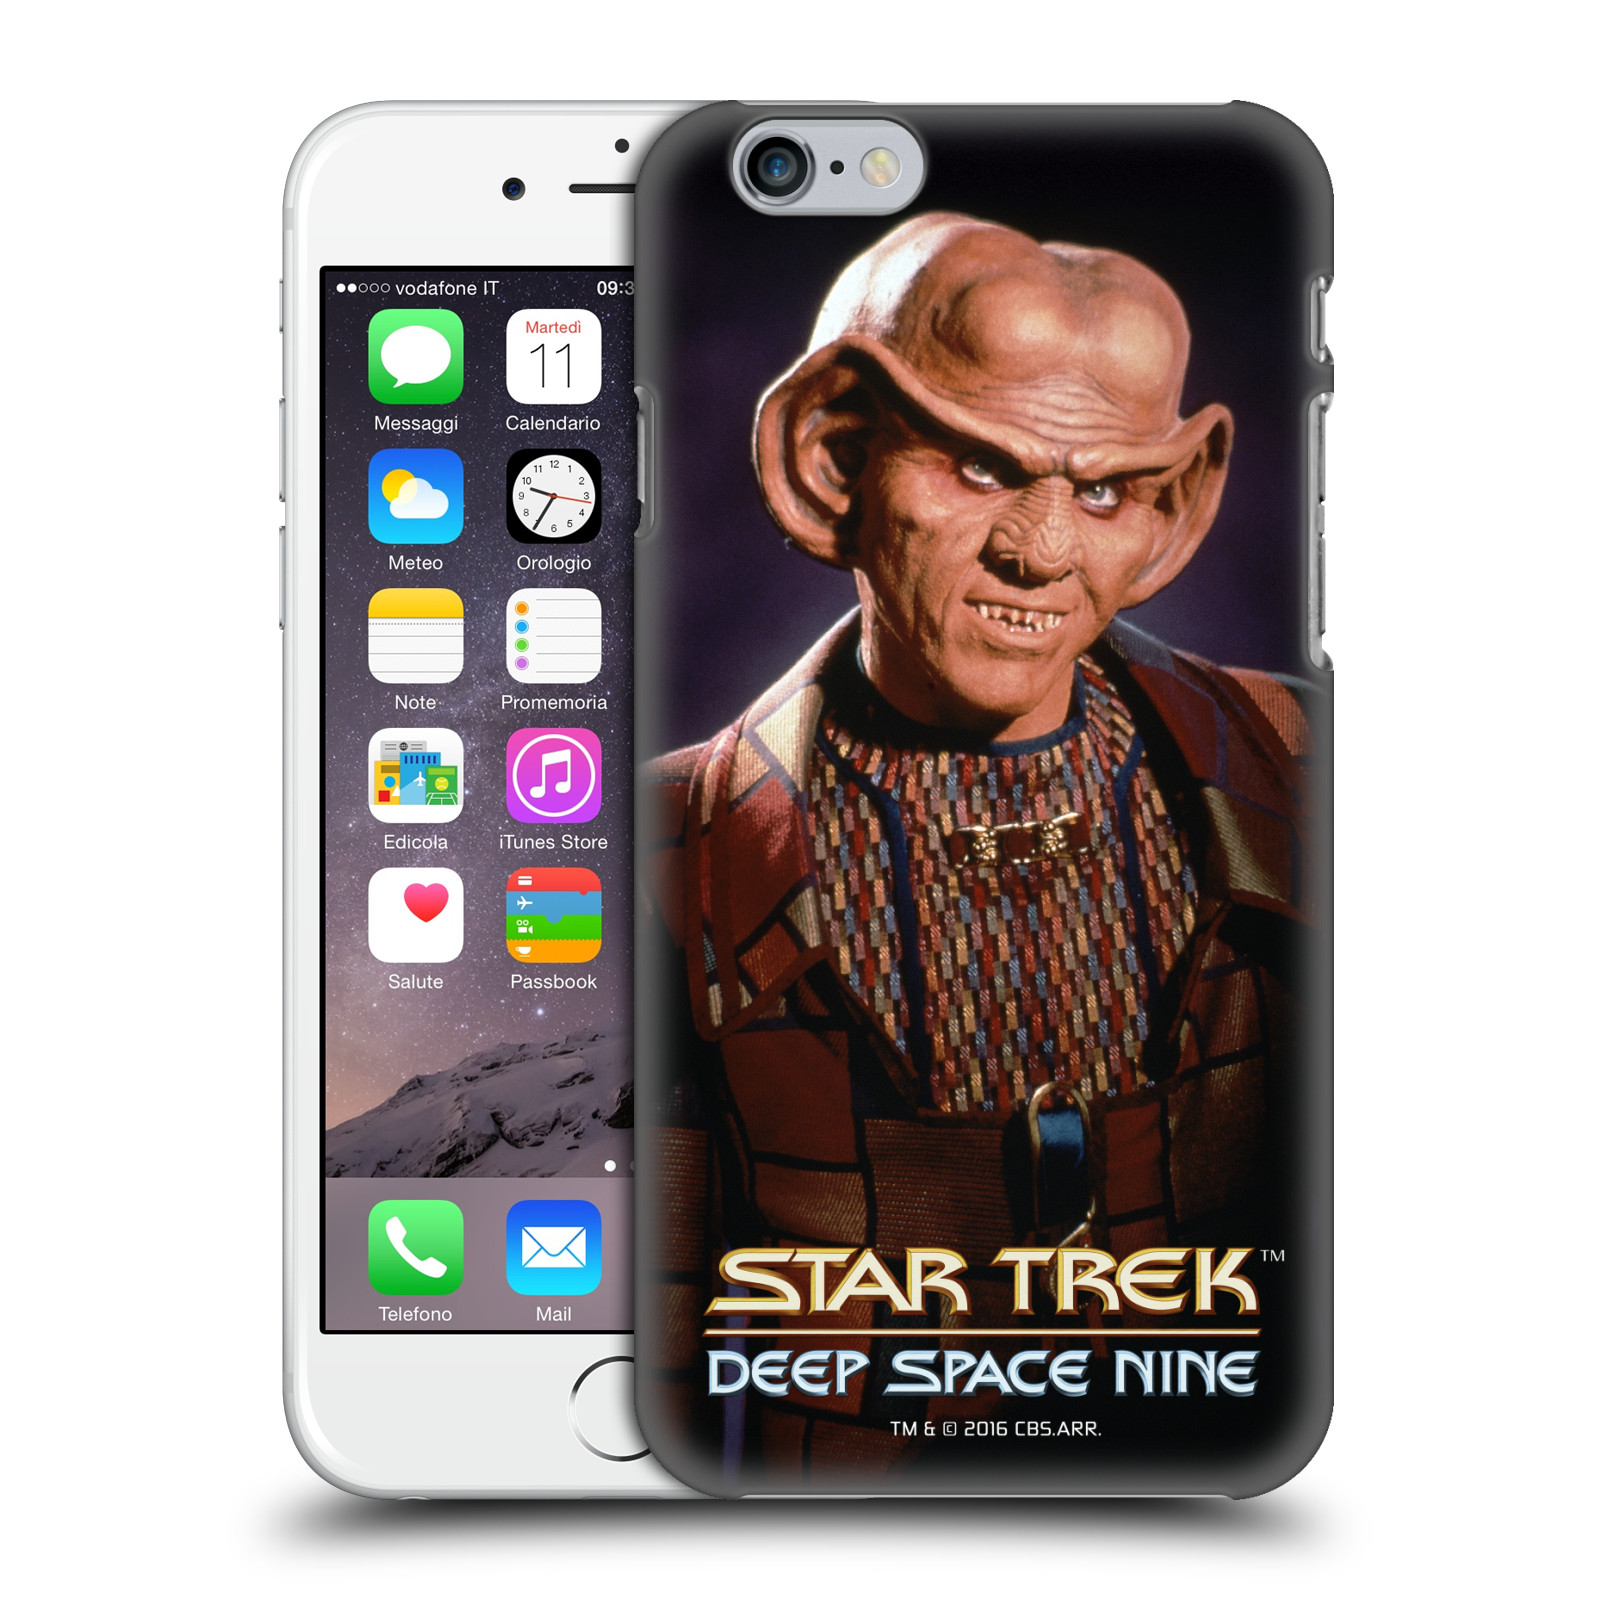 Star Trek Iconic Characters DS9-Quark